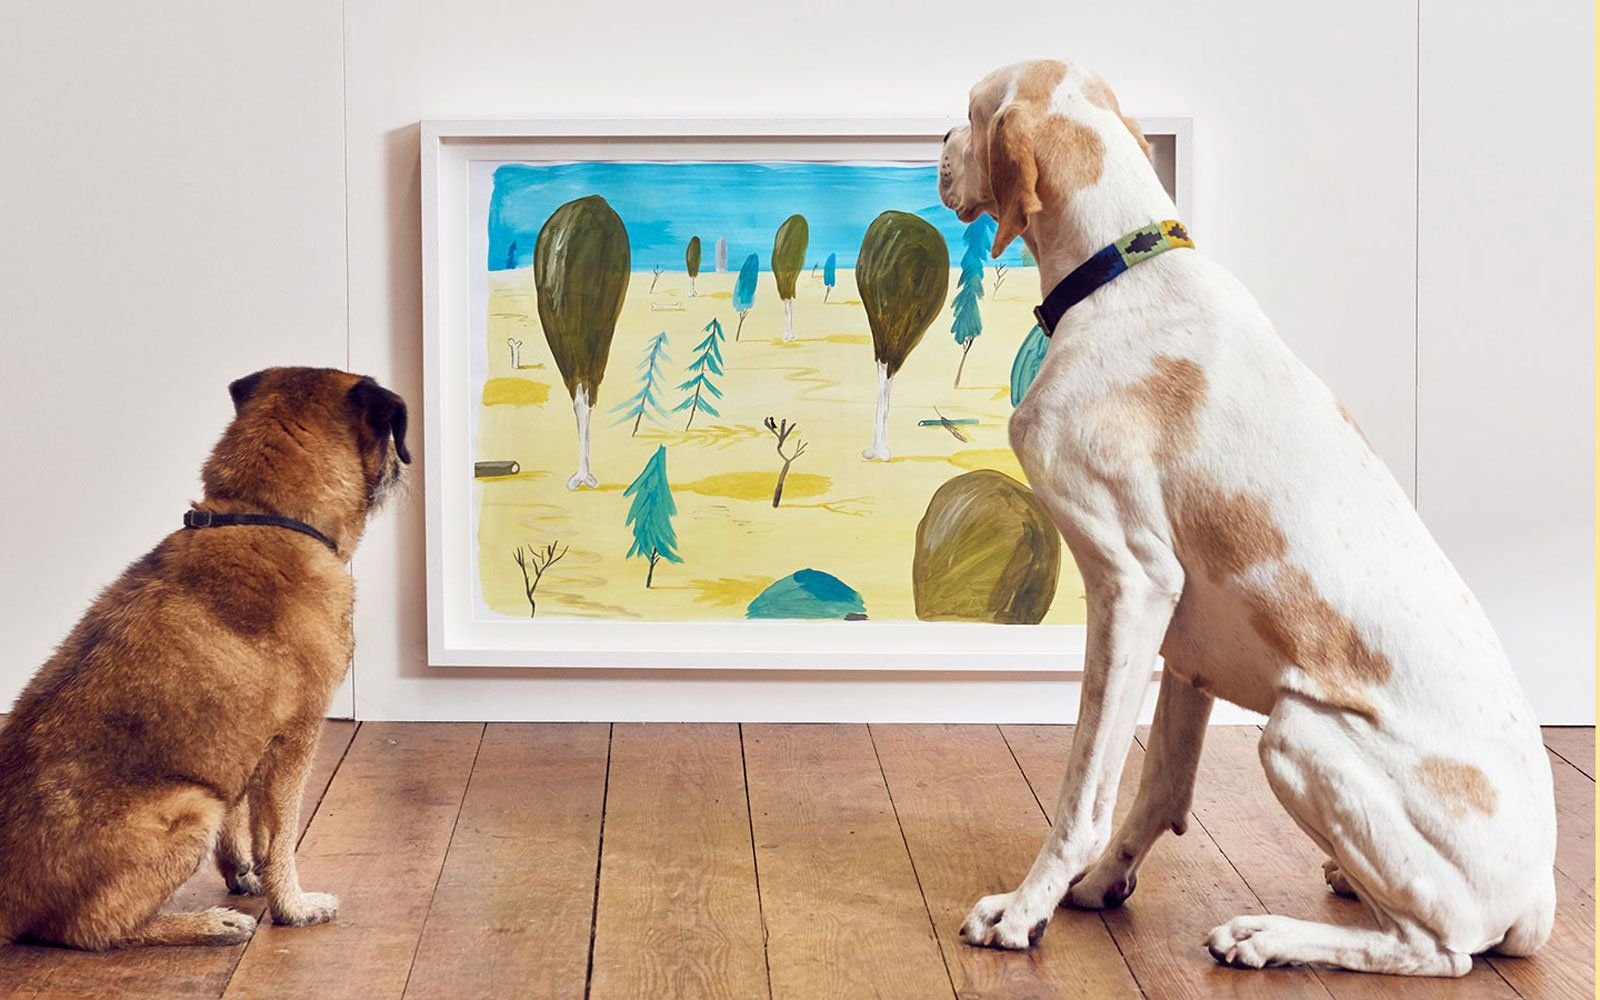 London Hosts the World's First Contemporary Art Show for Dogs | Contemporary art is going to the dogs.